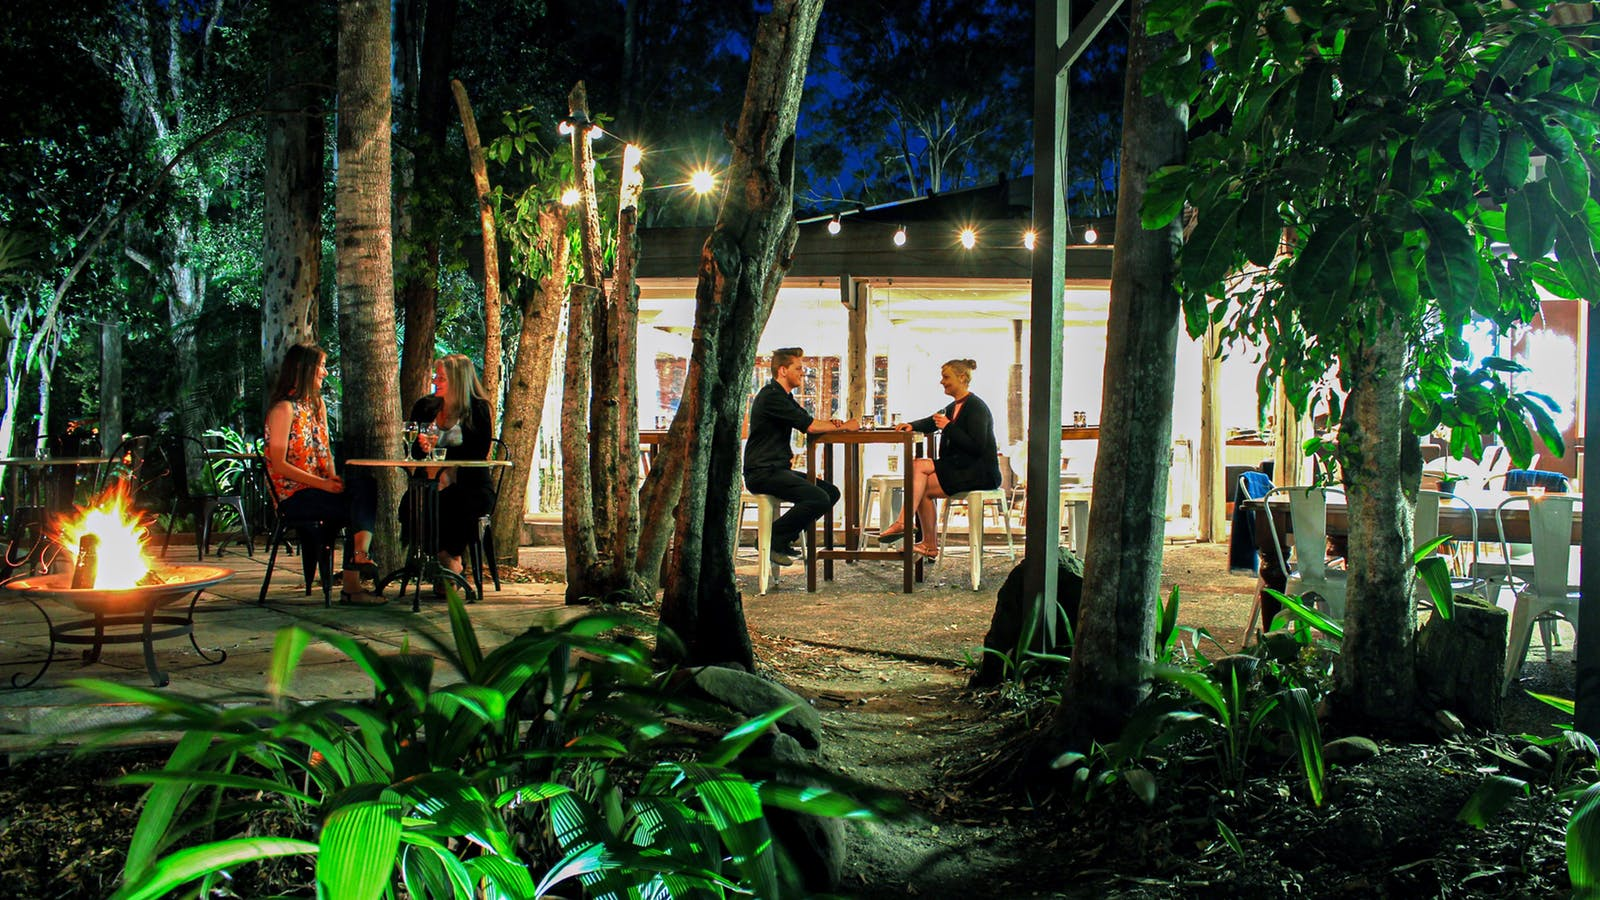 Rainforest Restaurant - Outdoor Evening